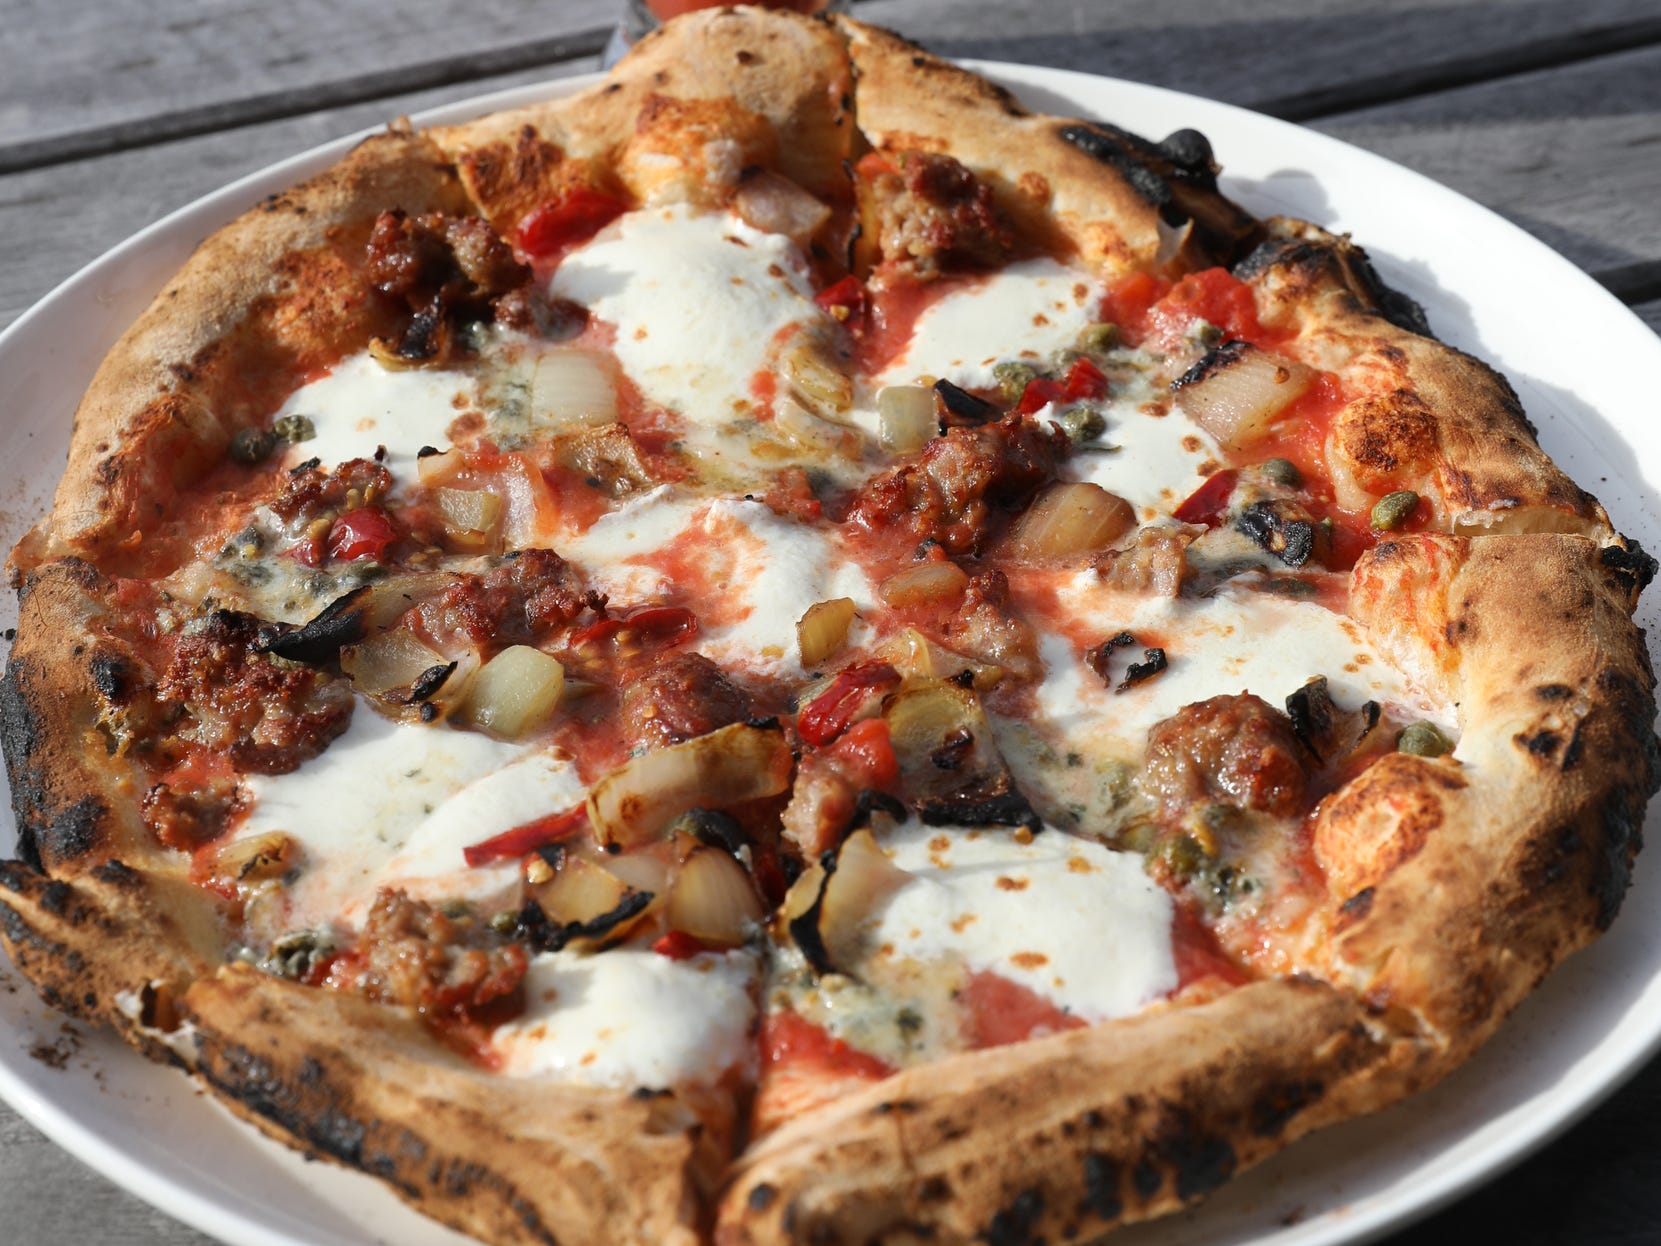 One of Chase Fox Harnett's pizzas:  a sausage gorganzola pizza.